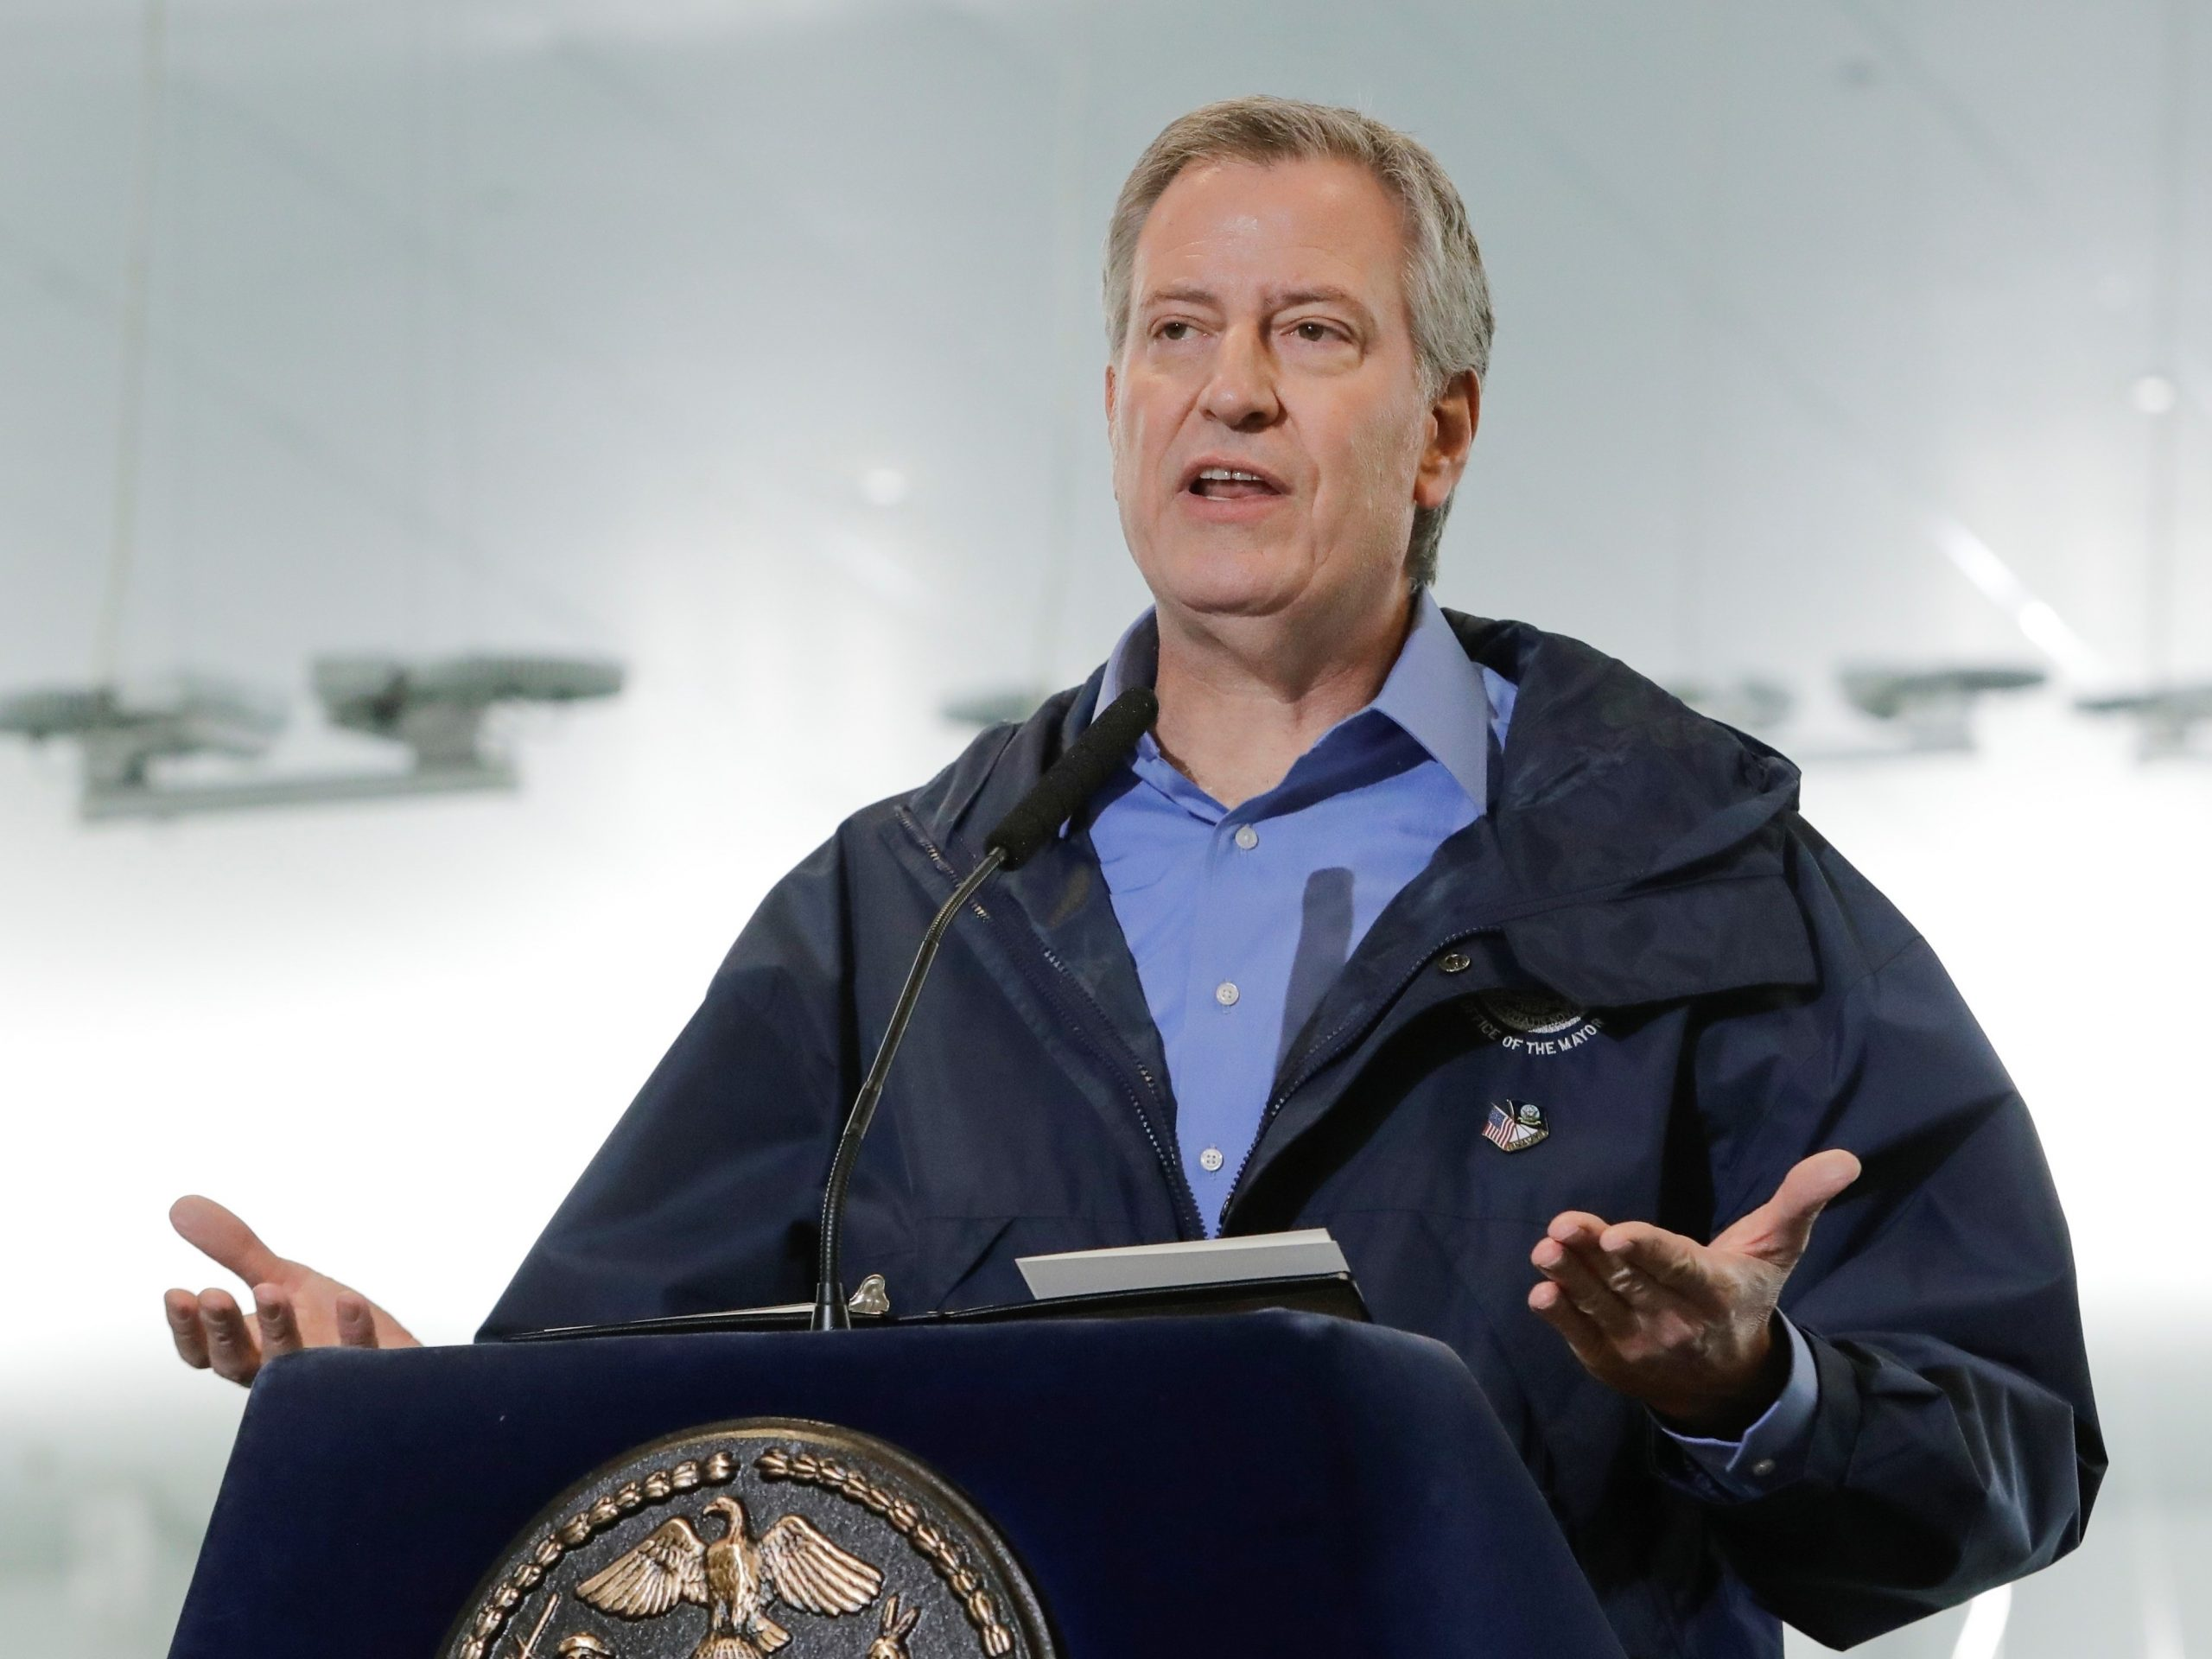 New York City Mayor Bill de Blasio says the city has already lost roughly $9 billion in revenue due to COVID-19 and predicts the toll could rise much higher.